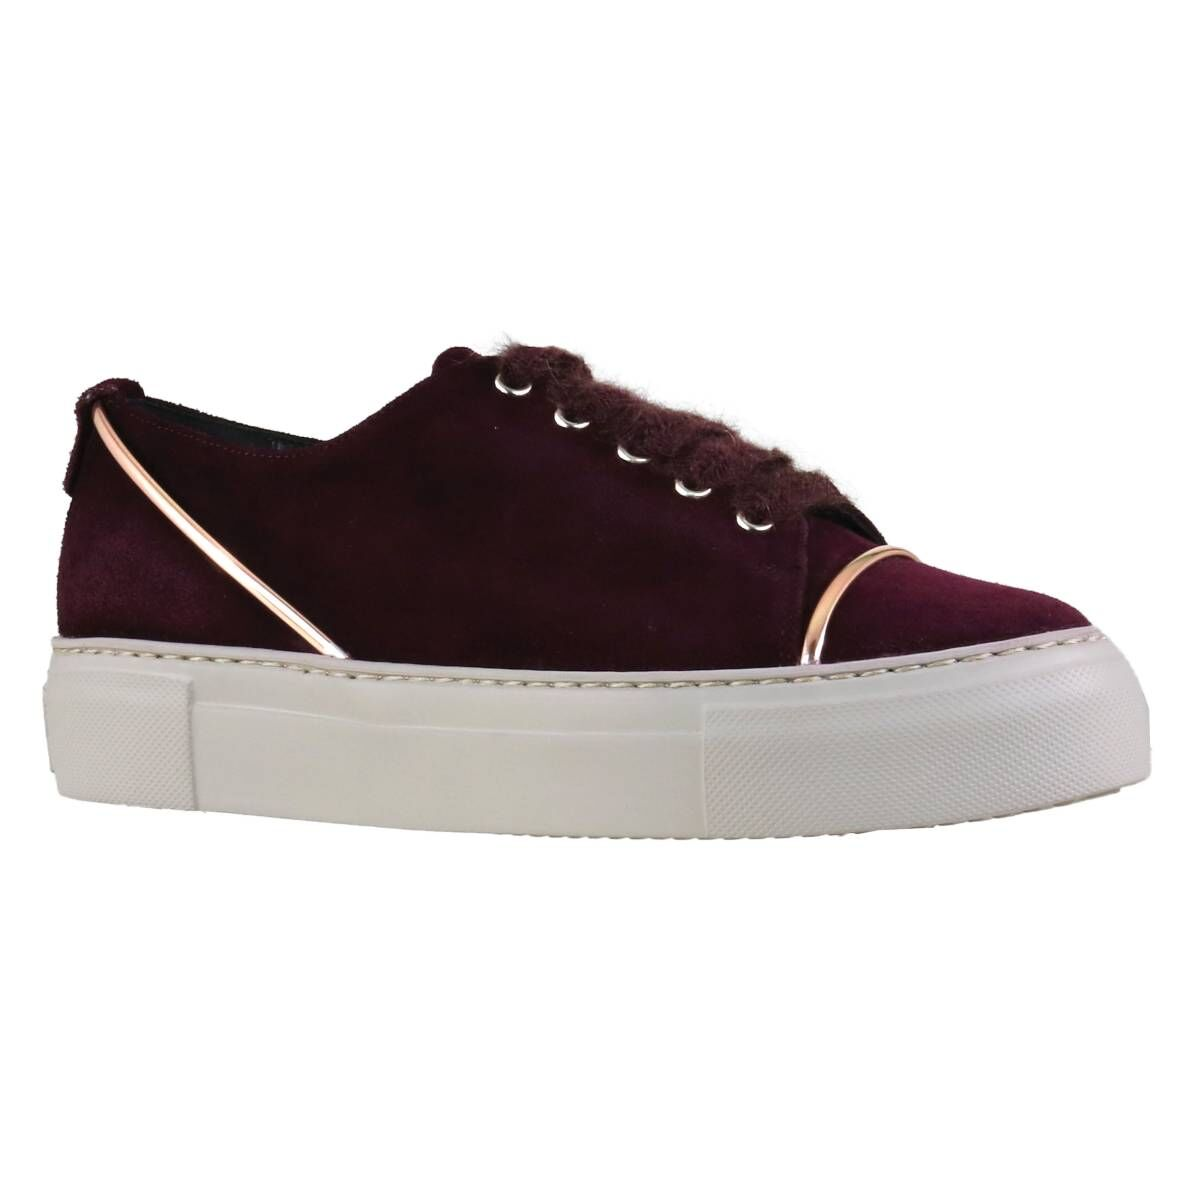 Attilio Giusti Leombruni sneakers D925139BGKO bordeaux red at Penninkhoffashion.com